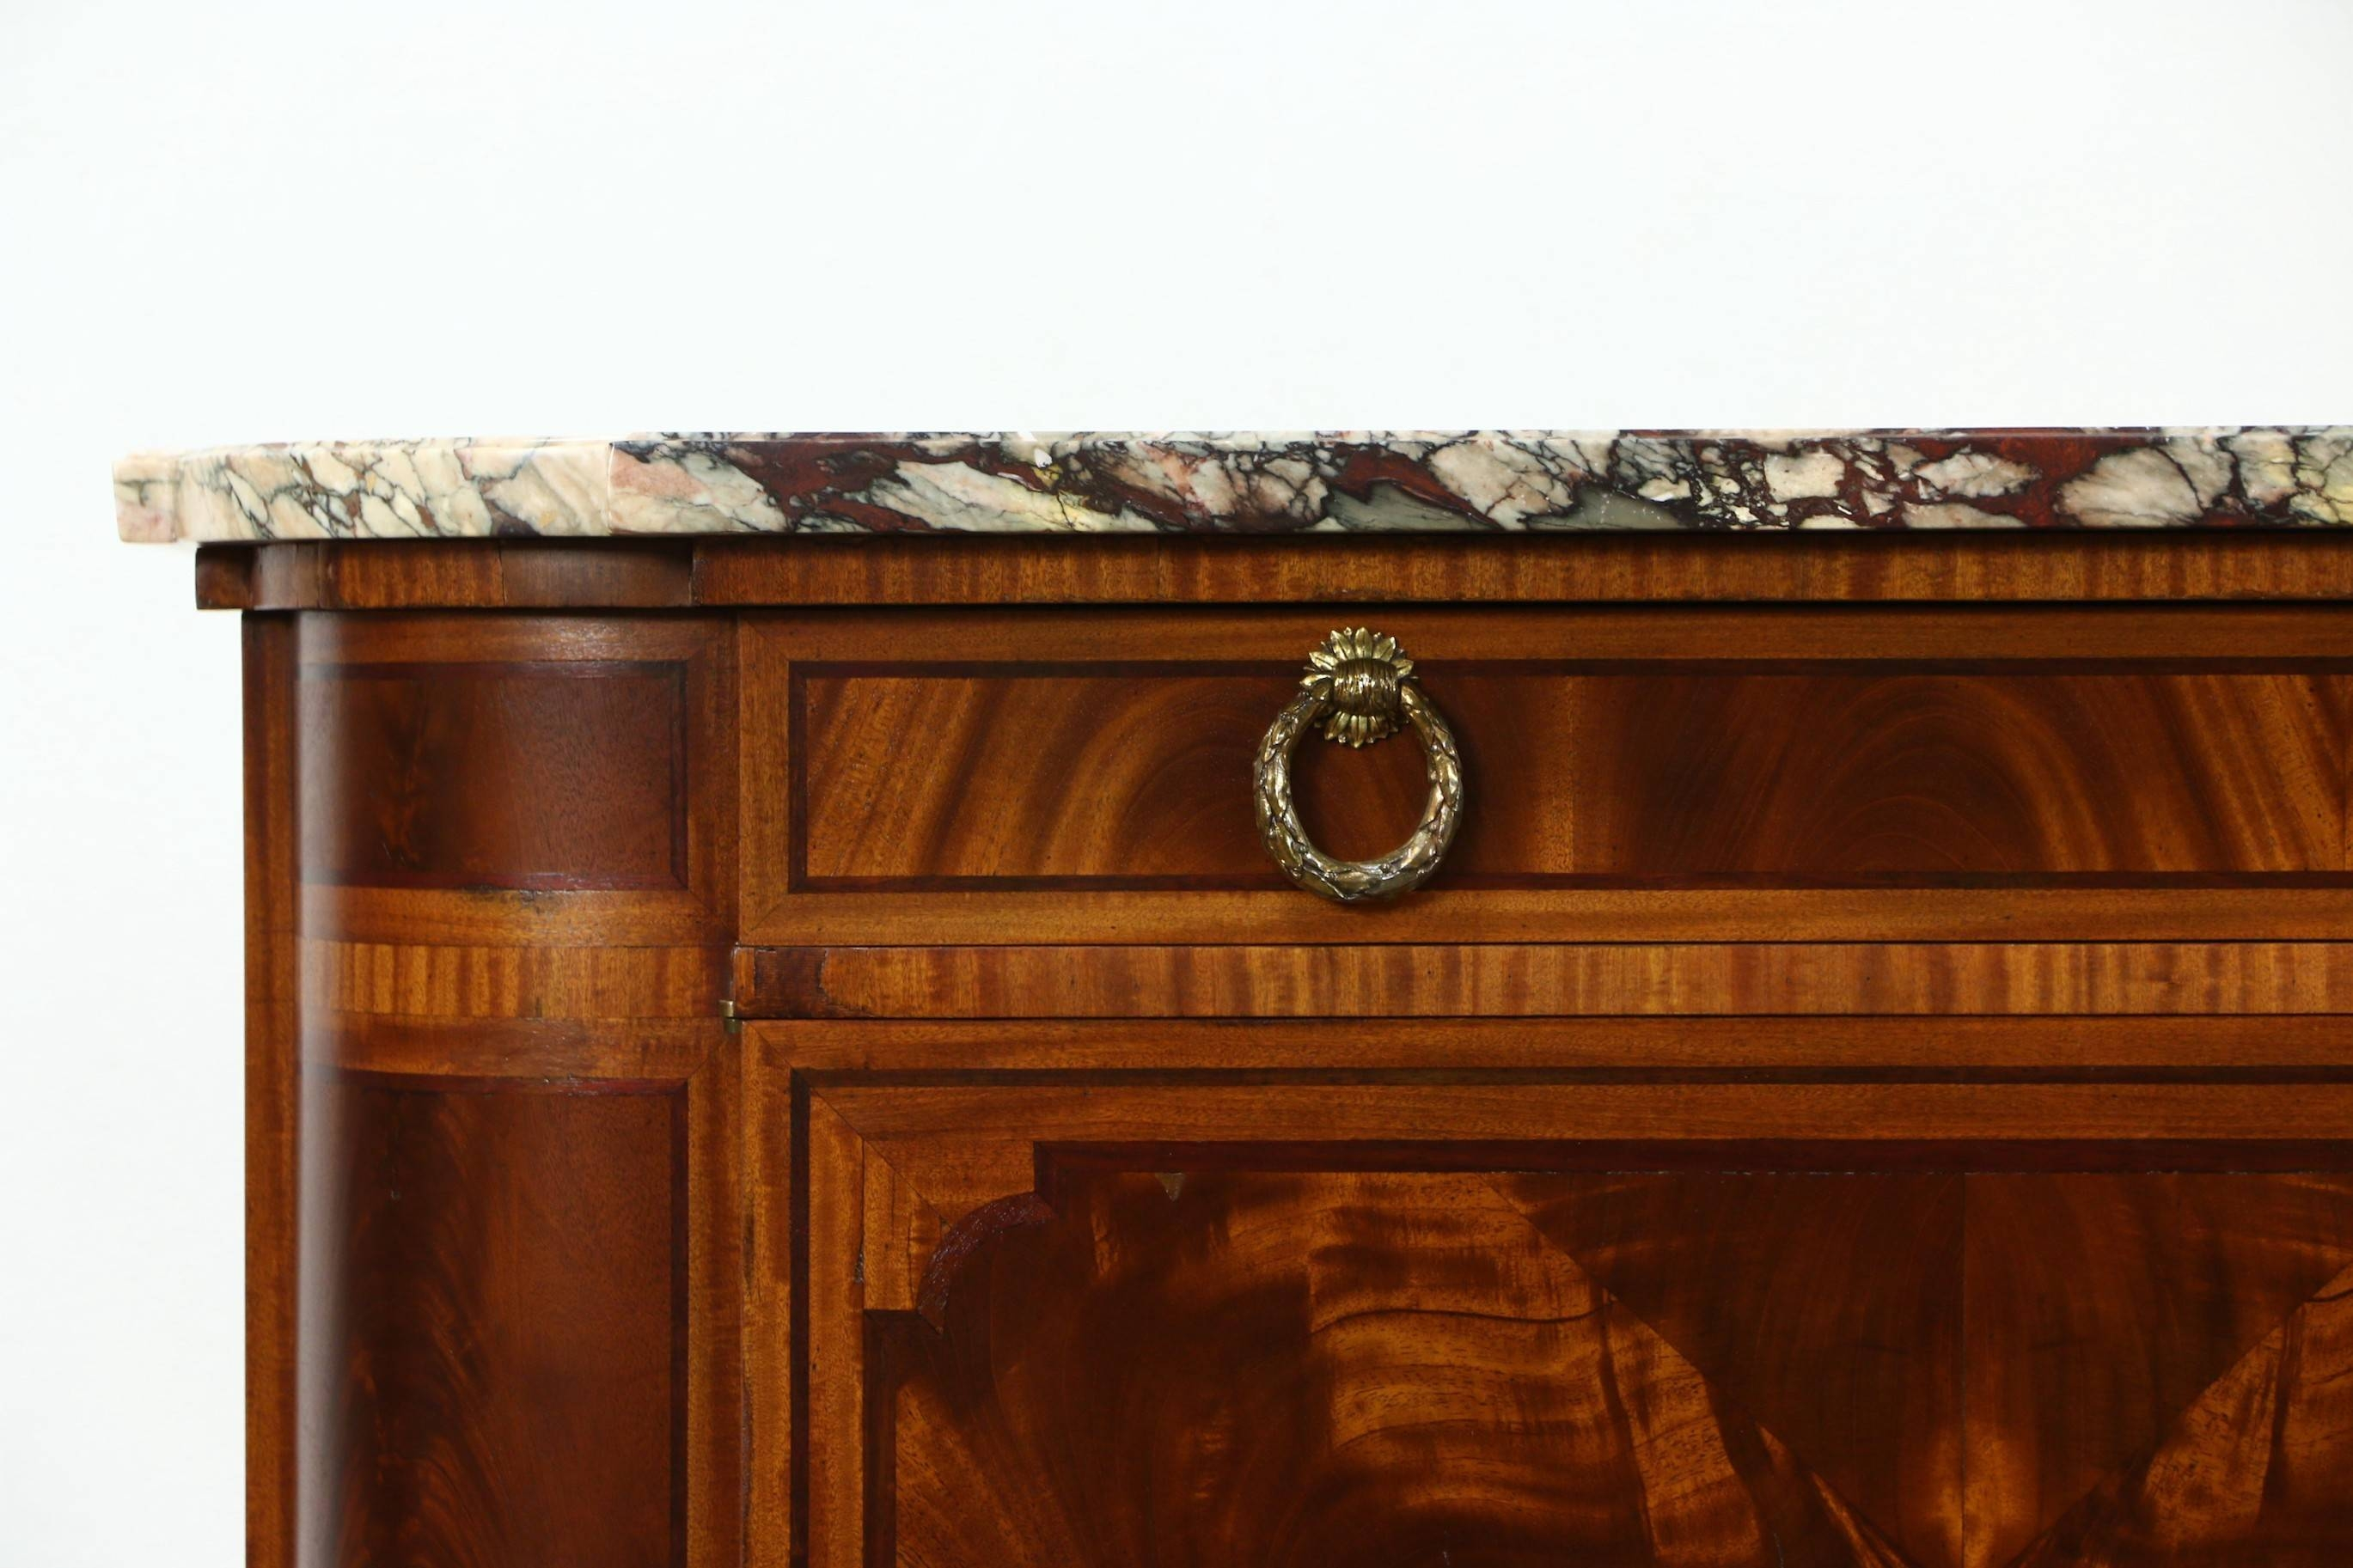 Sold - Marble Top Paris France Signed 1930 Vintage Sideboard inside Sideboards With Marble Tops (Image 12 of 15)